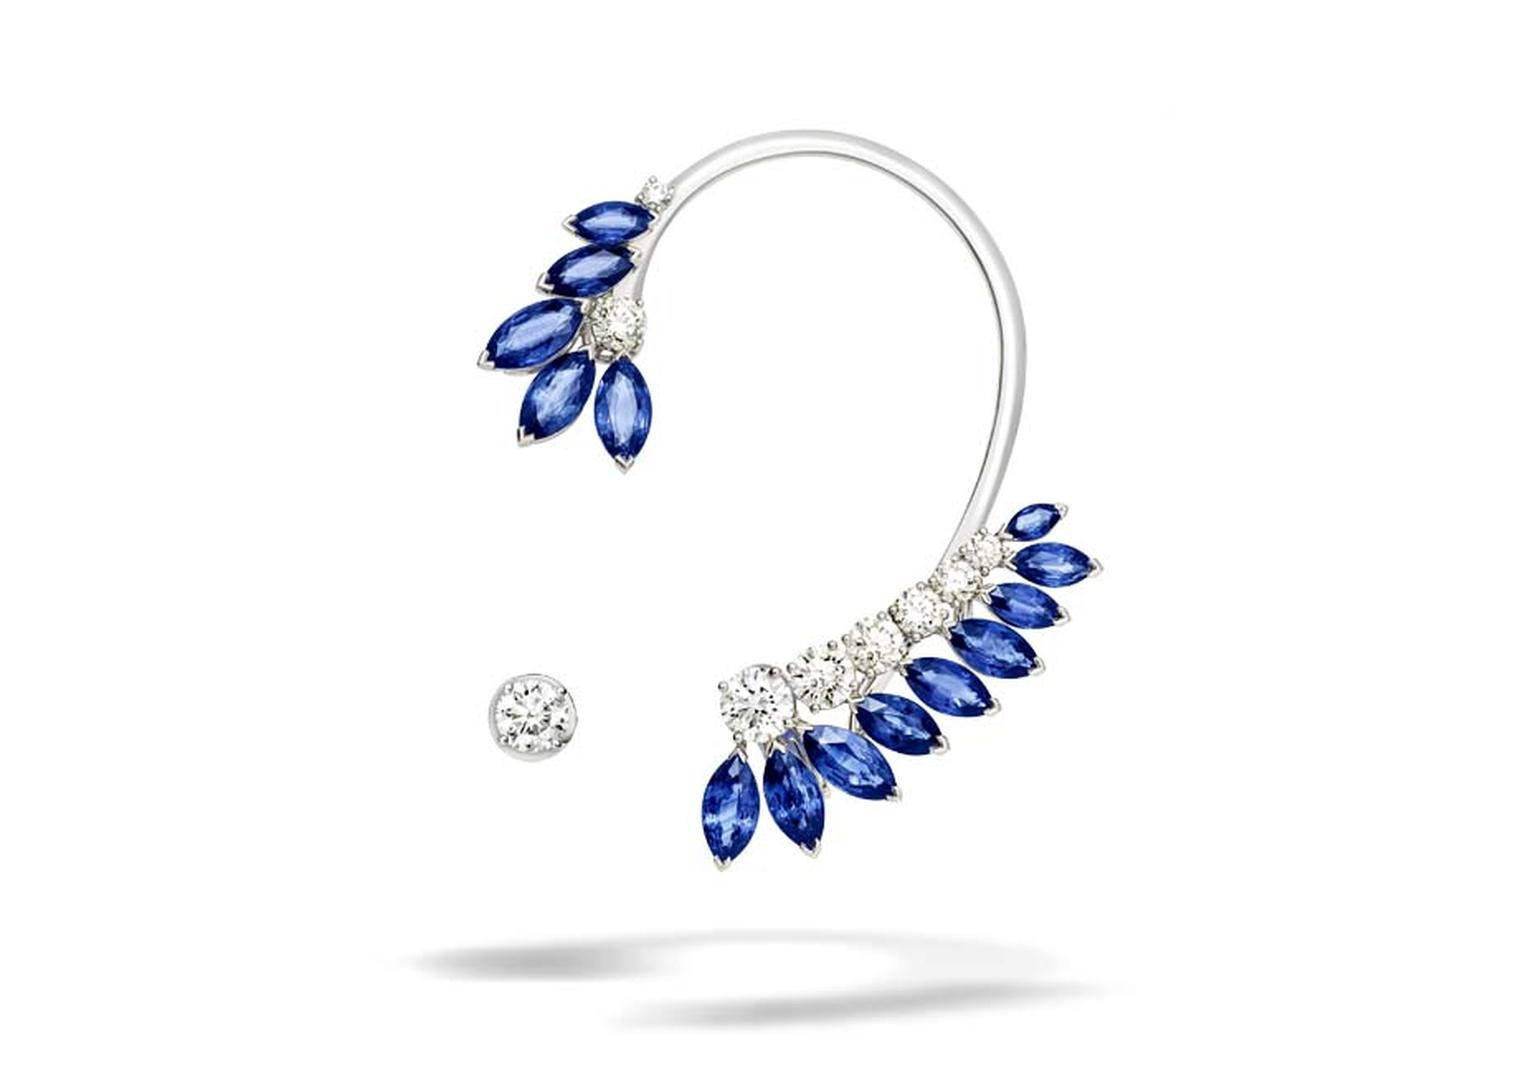 Piaget Extremely Piaget collection white gold earrings set with 12.29ct of marquise cut blue sapphires and various sizes of brilliant cut diamonds.